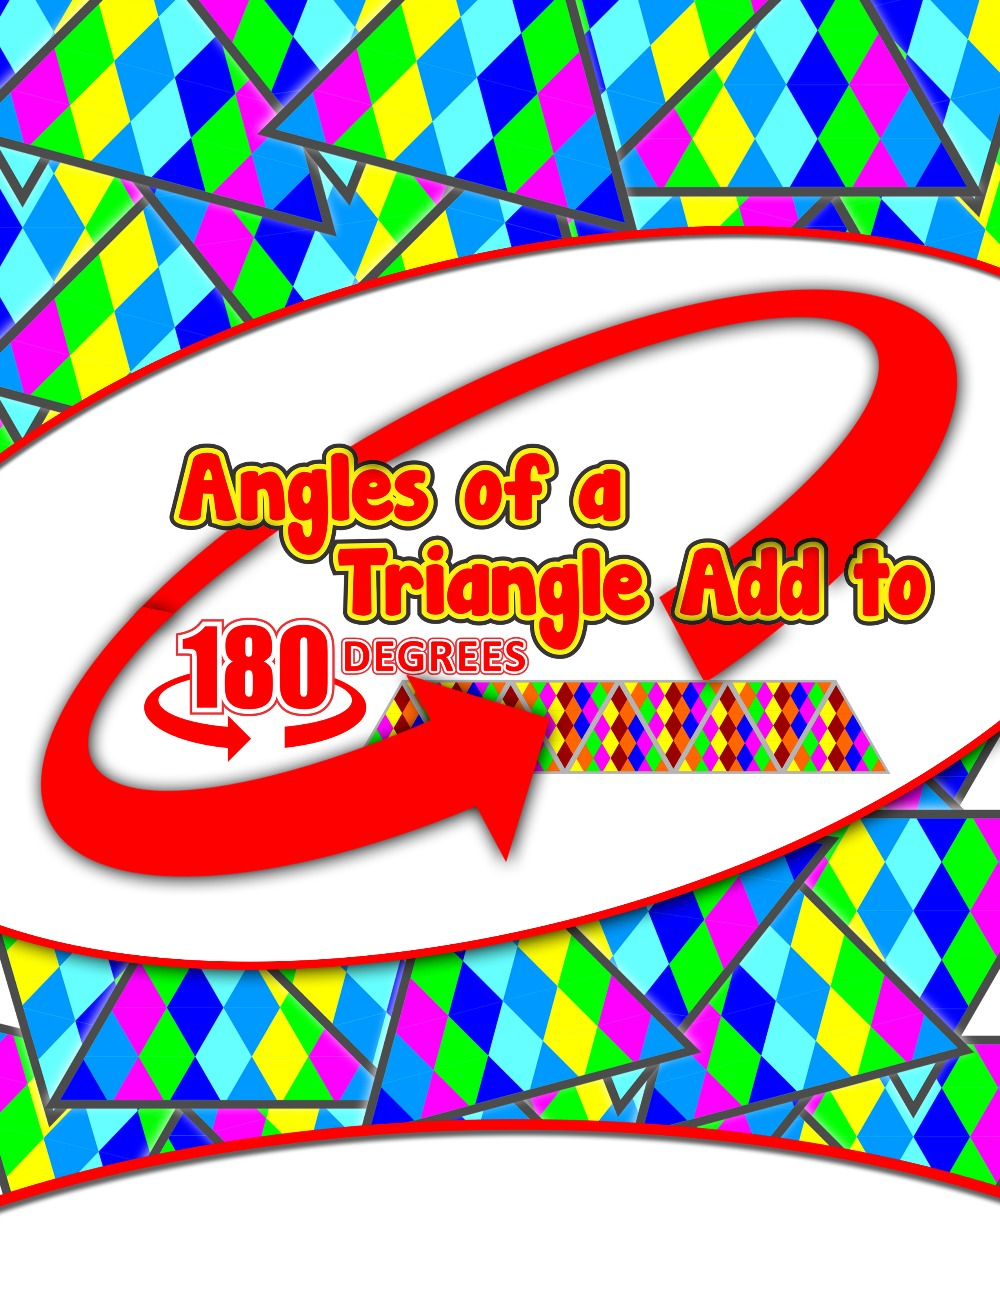 Angles of a Triangle Add to 180 degrees